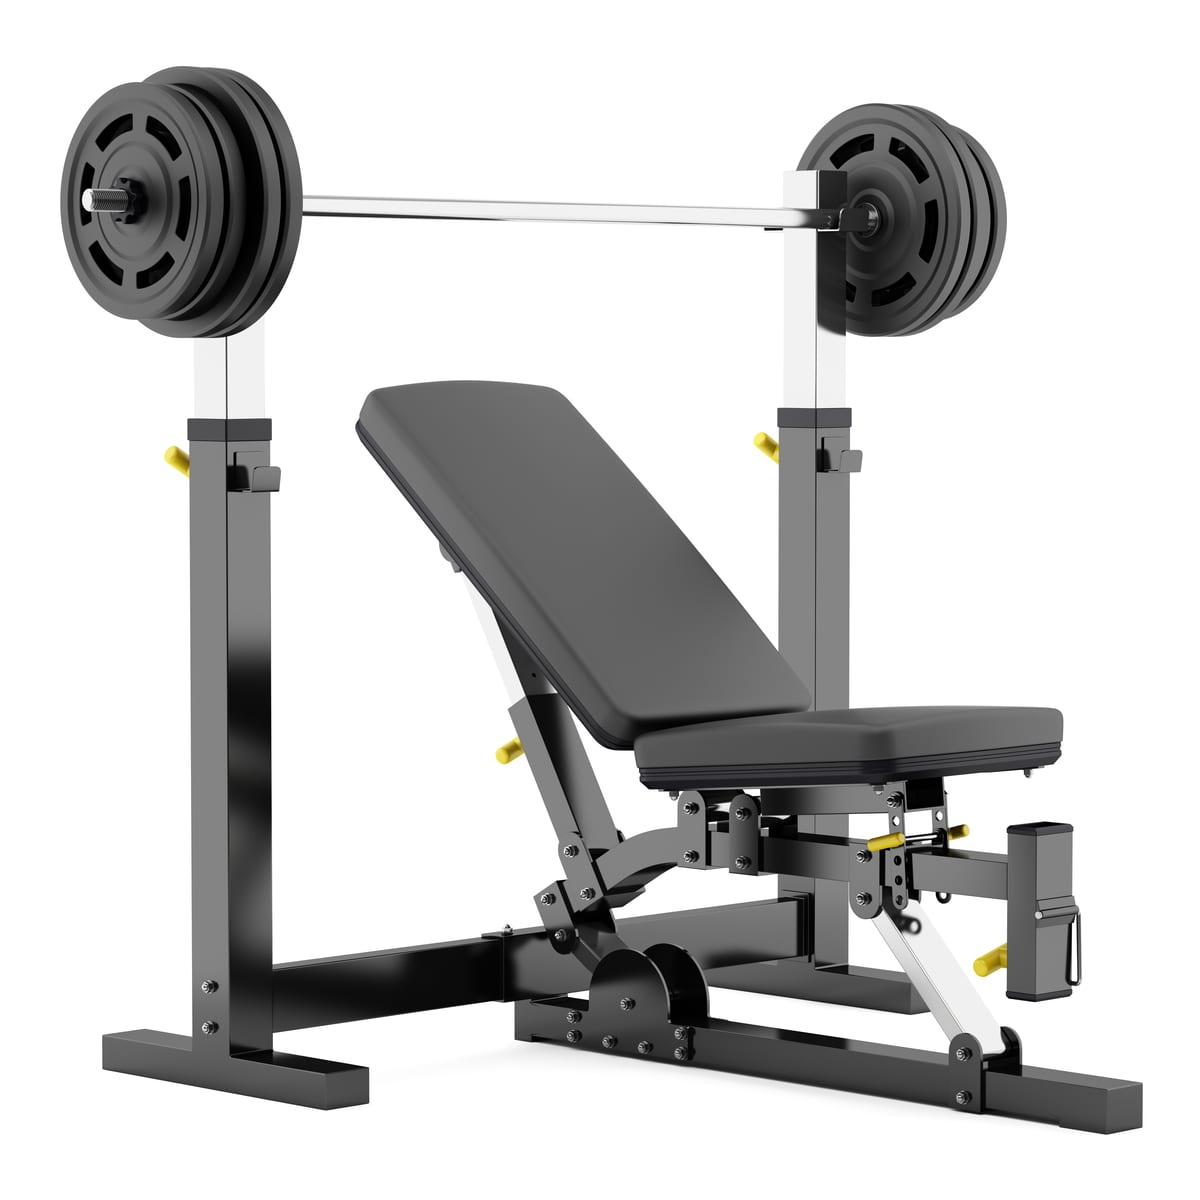 leg faucet lifting and weight cost size workout press gym small with sports stand olympic ideas full bathroom bench online shopping benches academy fitness set weights alone